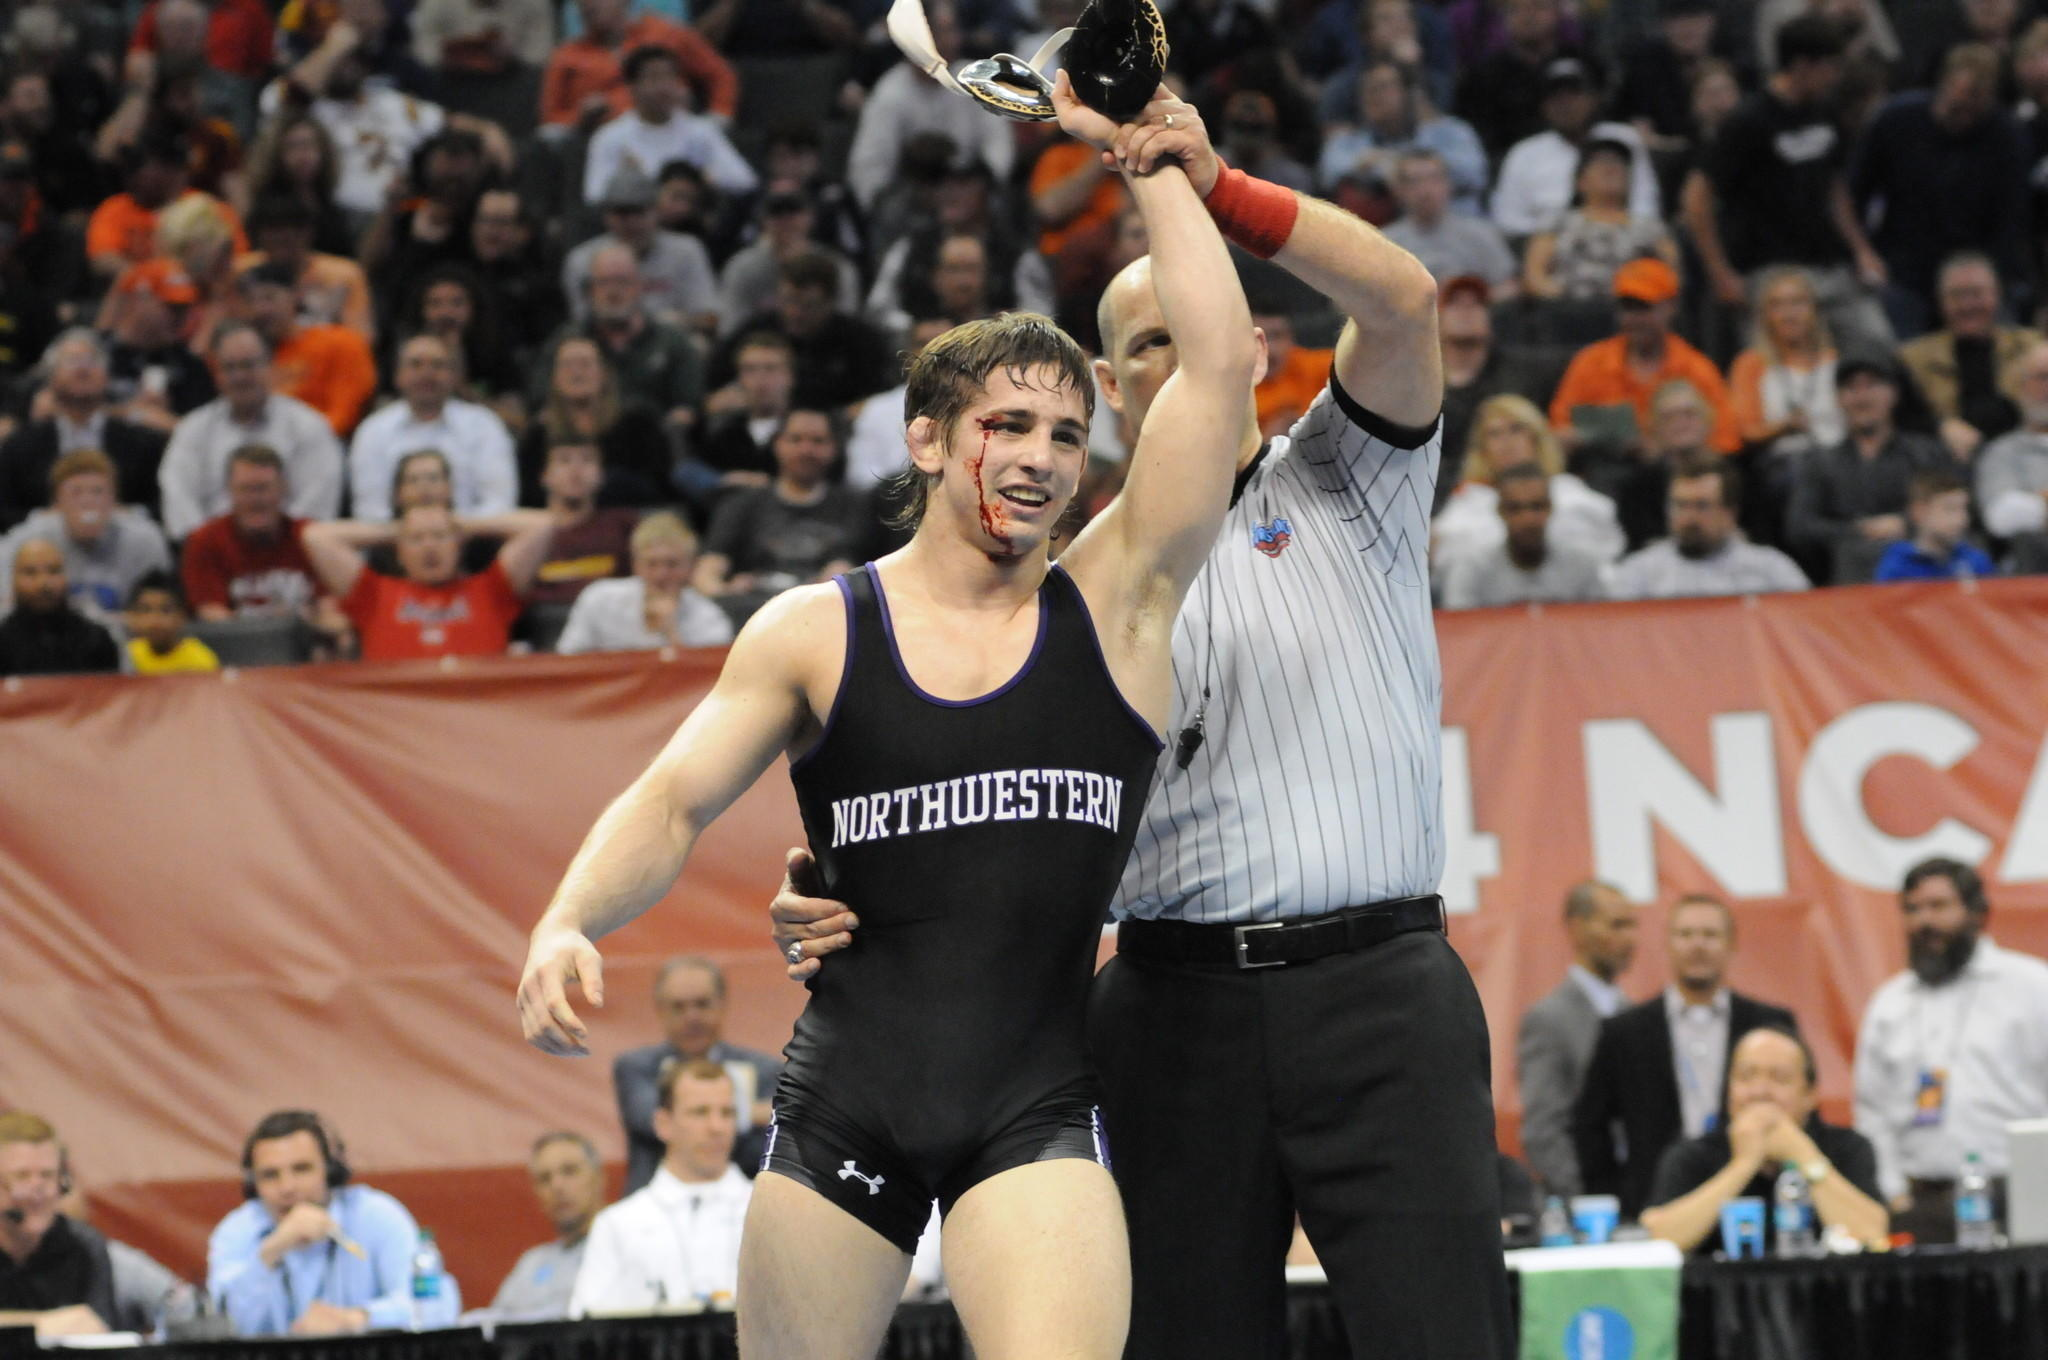 Bloodied but unbowed: Jason Tsirtsis after winning his NCAA wrestling semifinal.